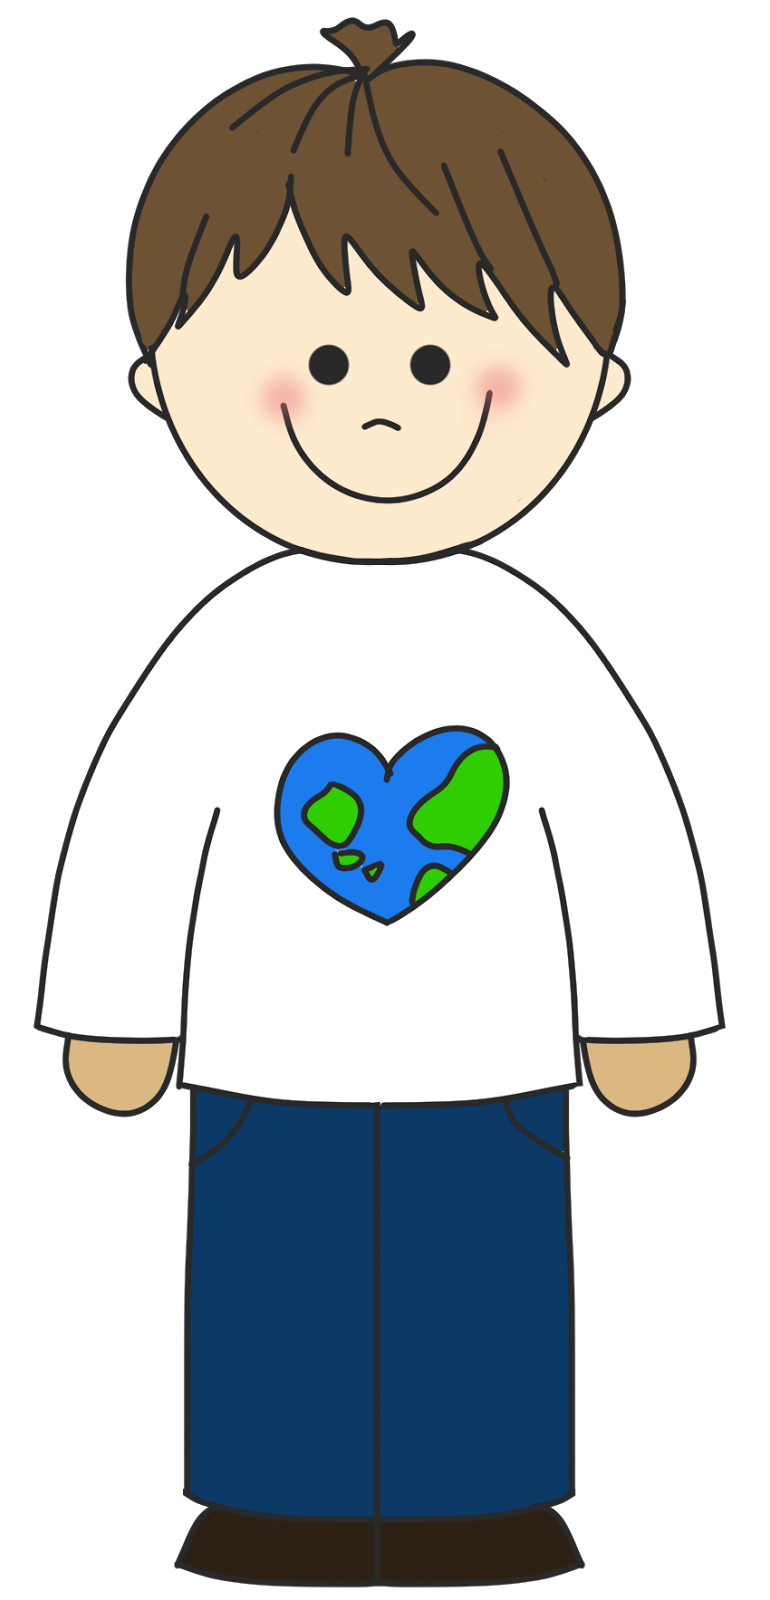 Face of a child boy clipart clipart image #11314